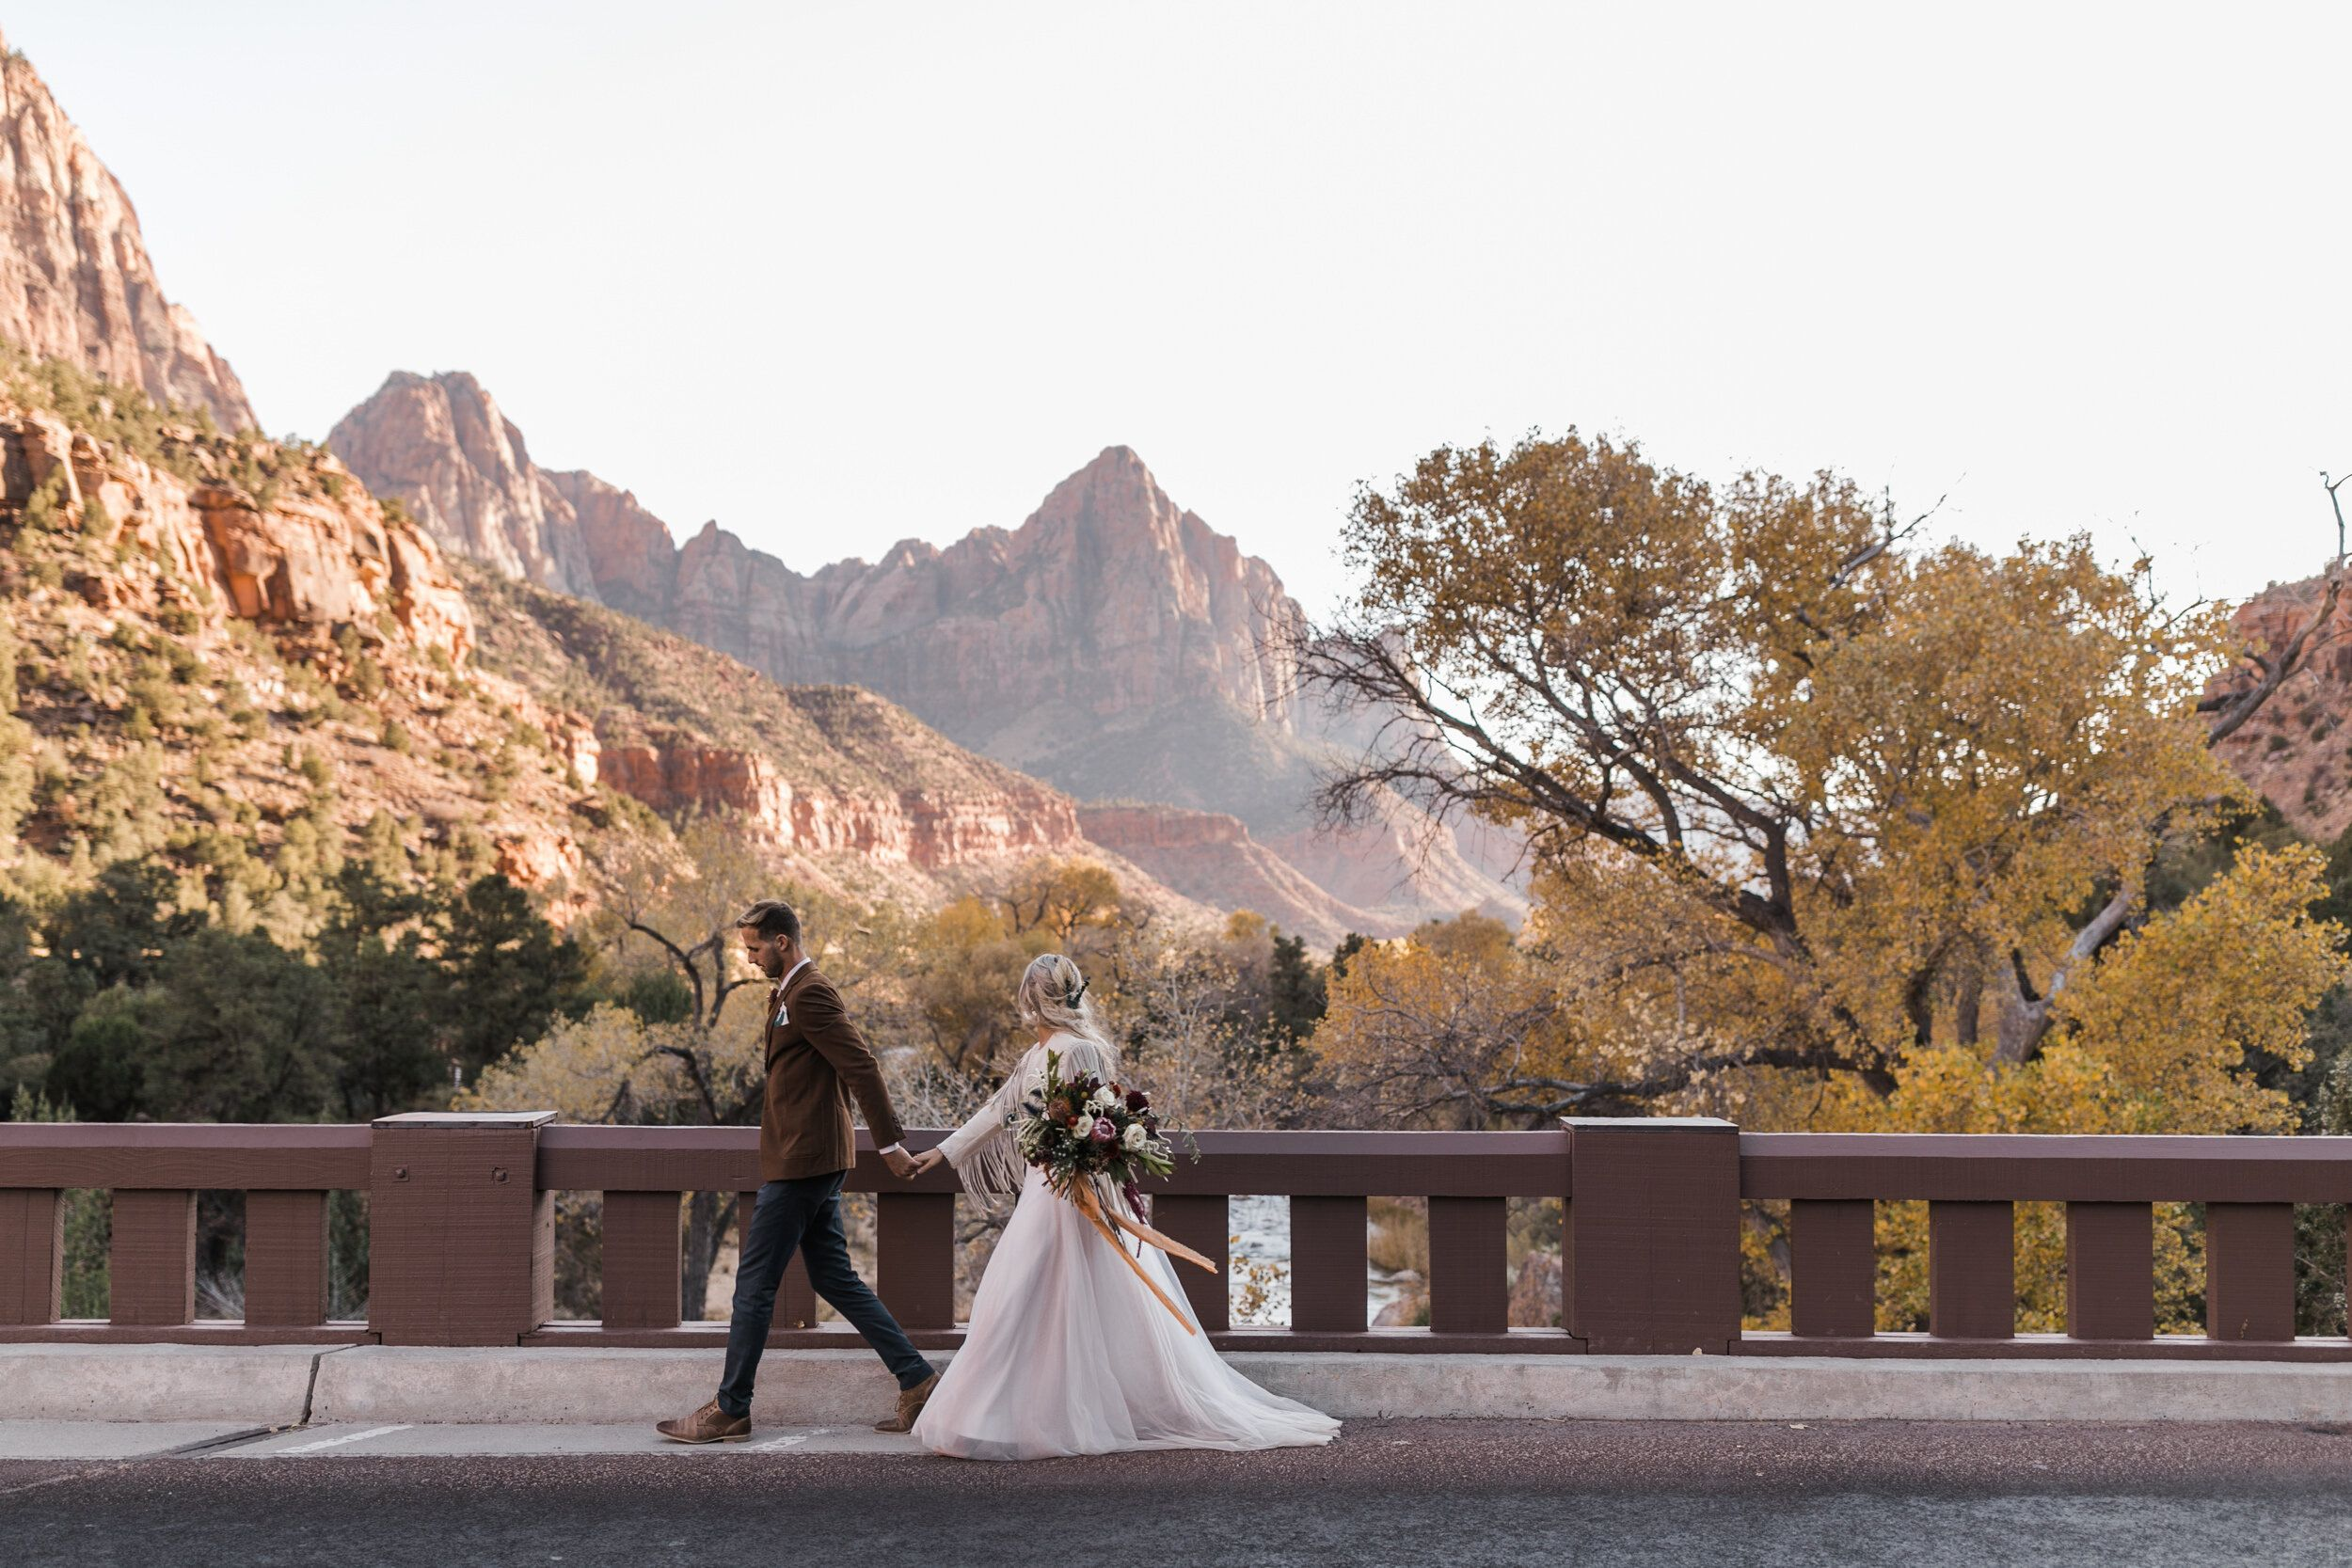 Zion National Park Wedding Under Canvas Zion And Lazalu Adventure Wedding Elopement Photographers In Moab Yosemite And Beyond The Hearnes In 2020 Adventure Wedding National Park Wedding National Parks